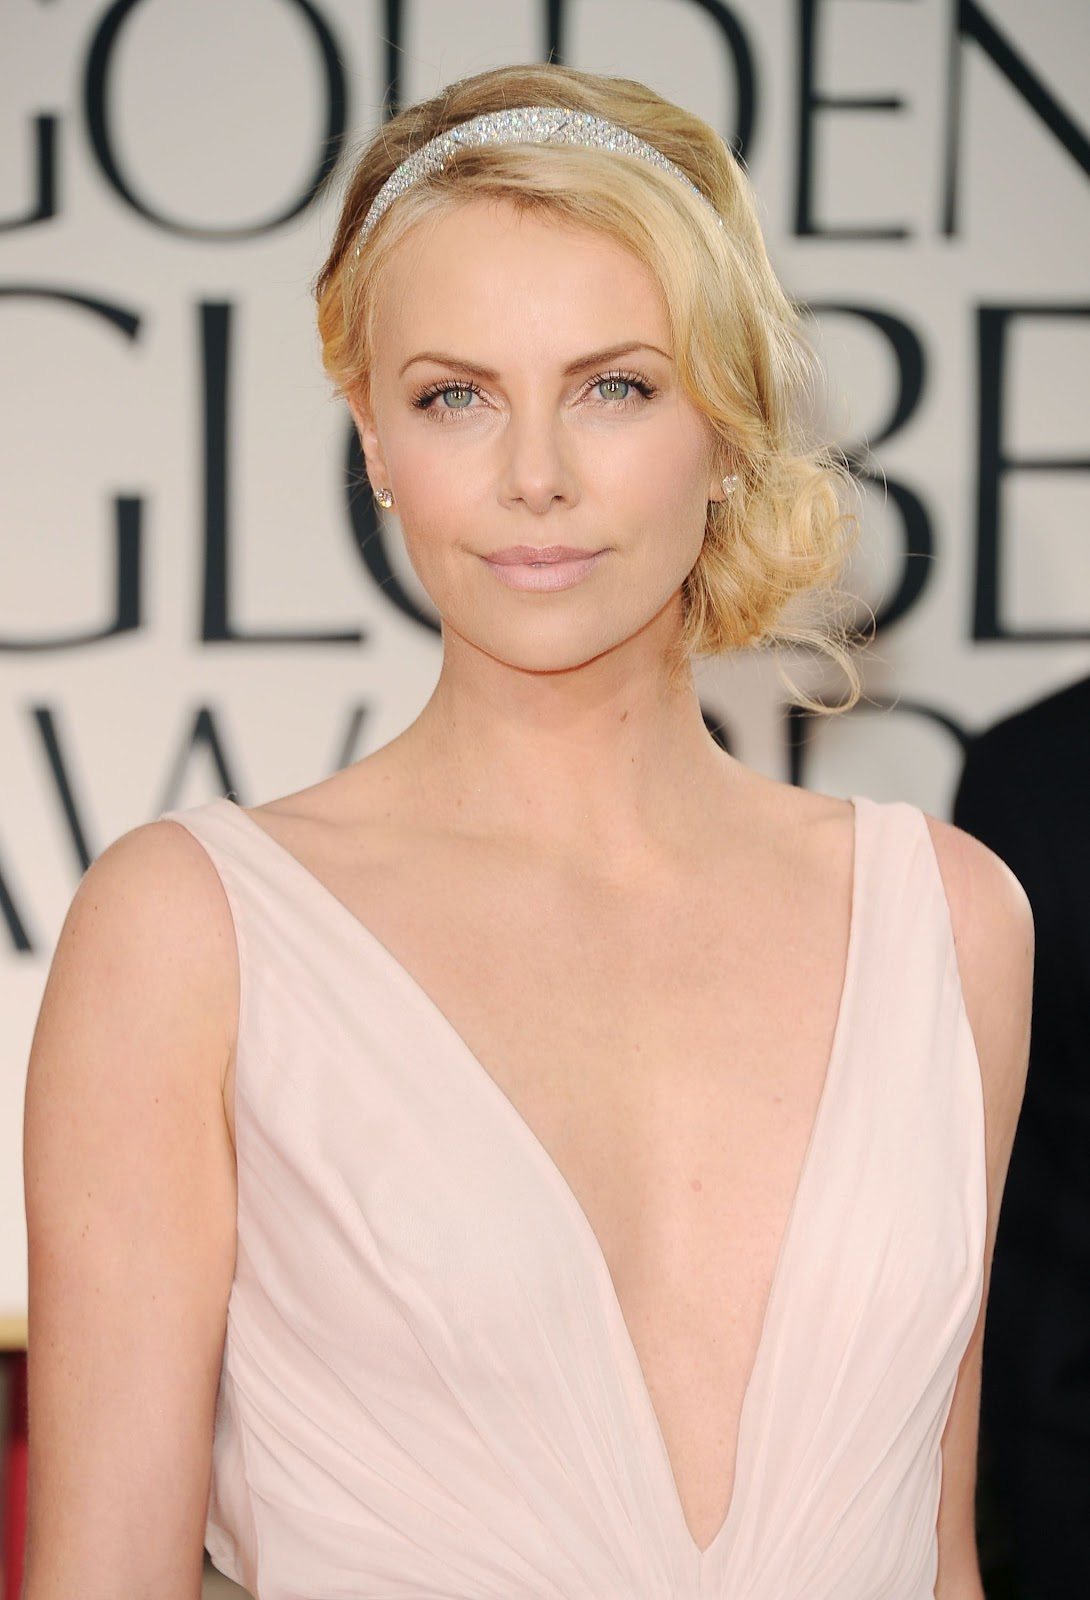 http://1.bp.blogspot.com/-rhQ9RE3tEs8/T00J7YCiJ2I/AAAAAAAAAt8/2mimyfAL3Og/s1600/Charlize-Theron---69th-Annual-Golden-Globe-Awards-in-Beverly-Hills2-01162012002205000000.jpg